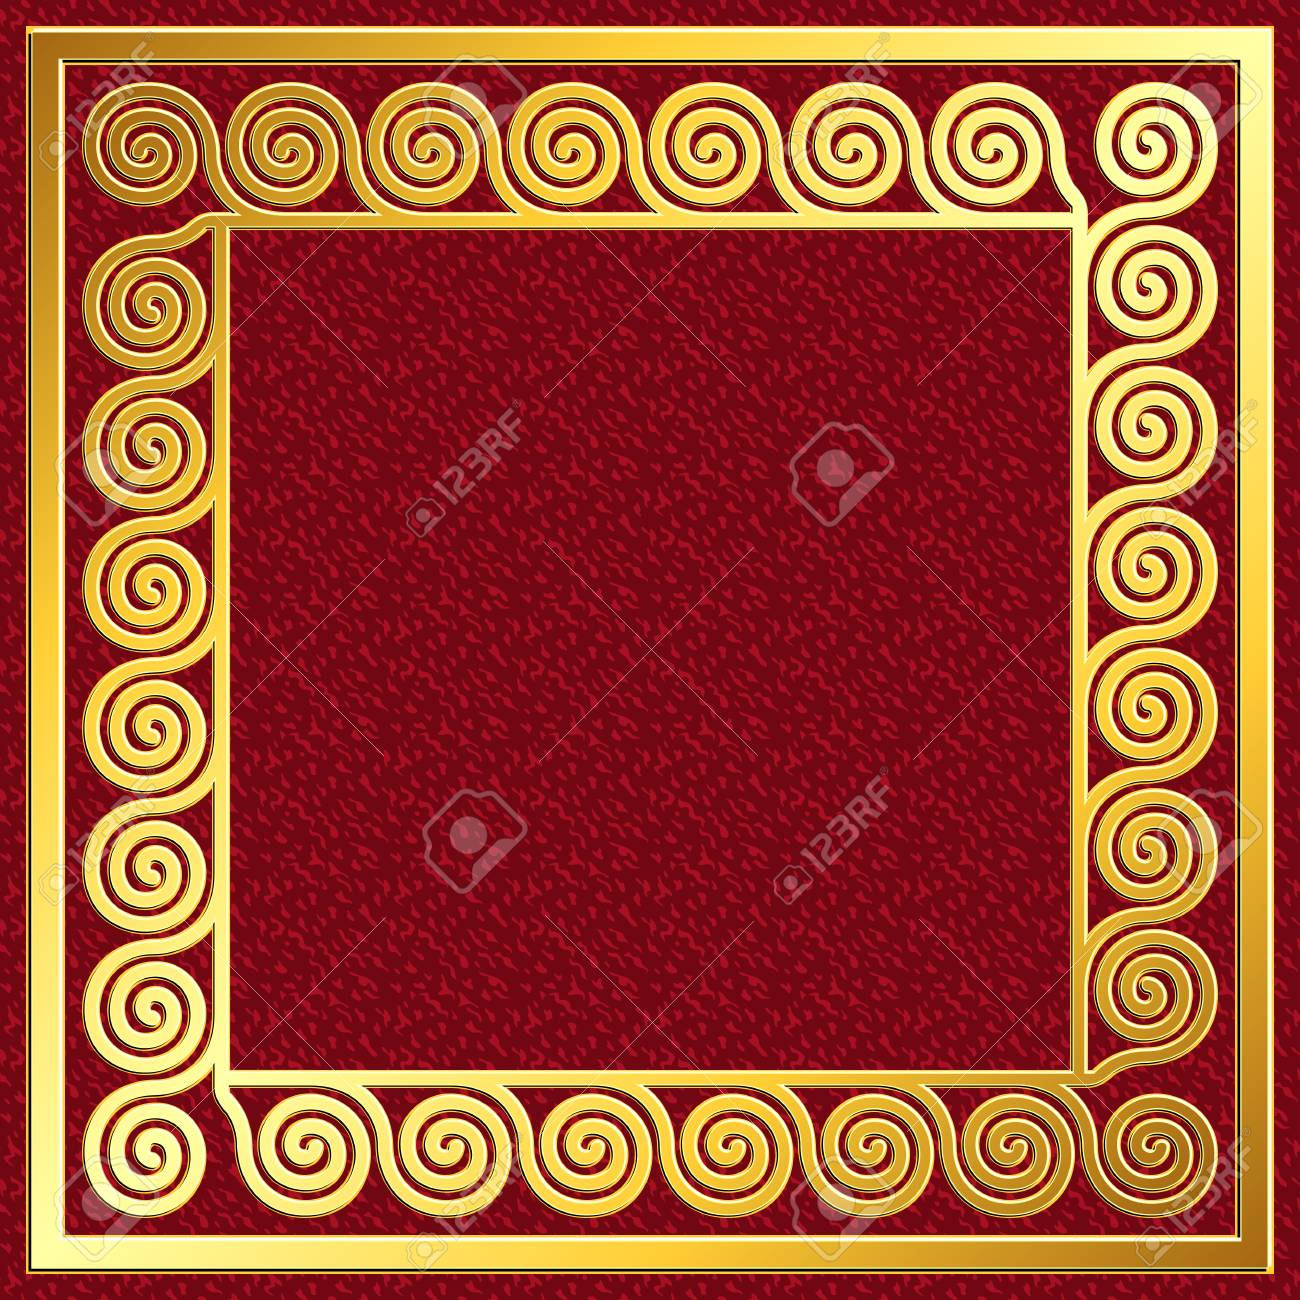 Golden square frame with traditional vintage greek meander pattern golden square frame with traditional vintage greek meander pattern on red background for design template jeuxipadfo Gallery